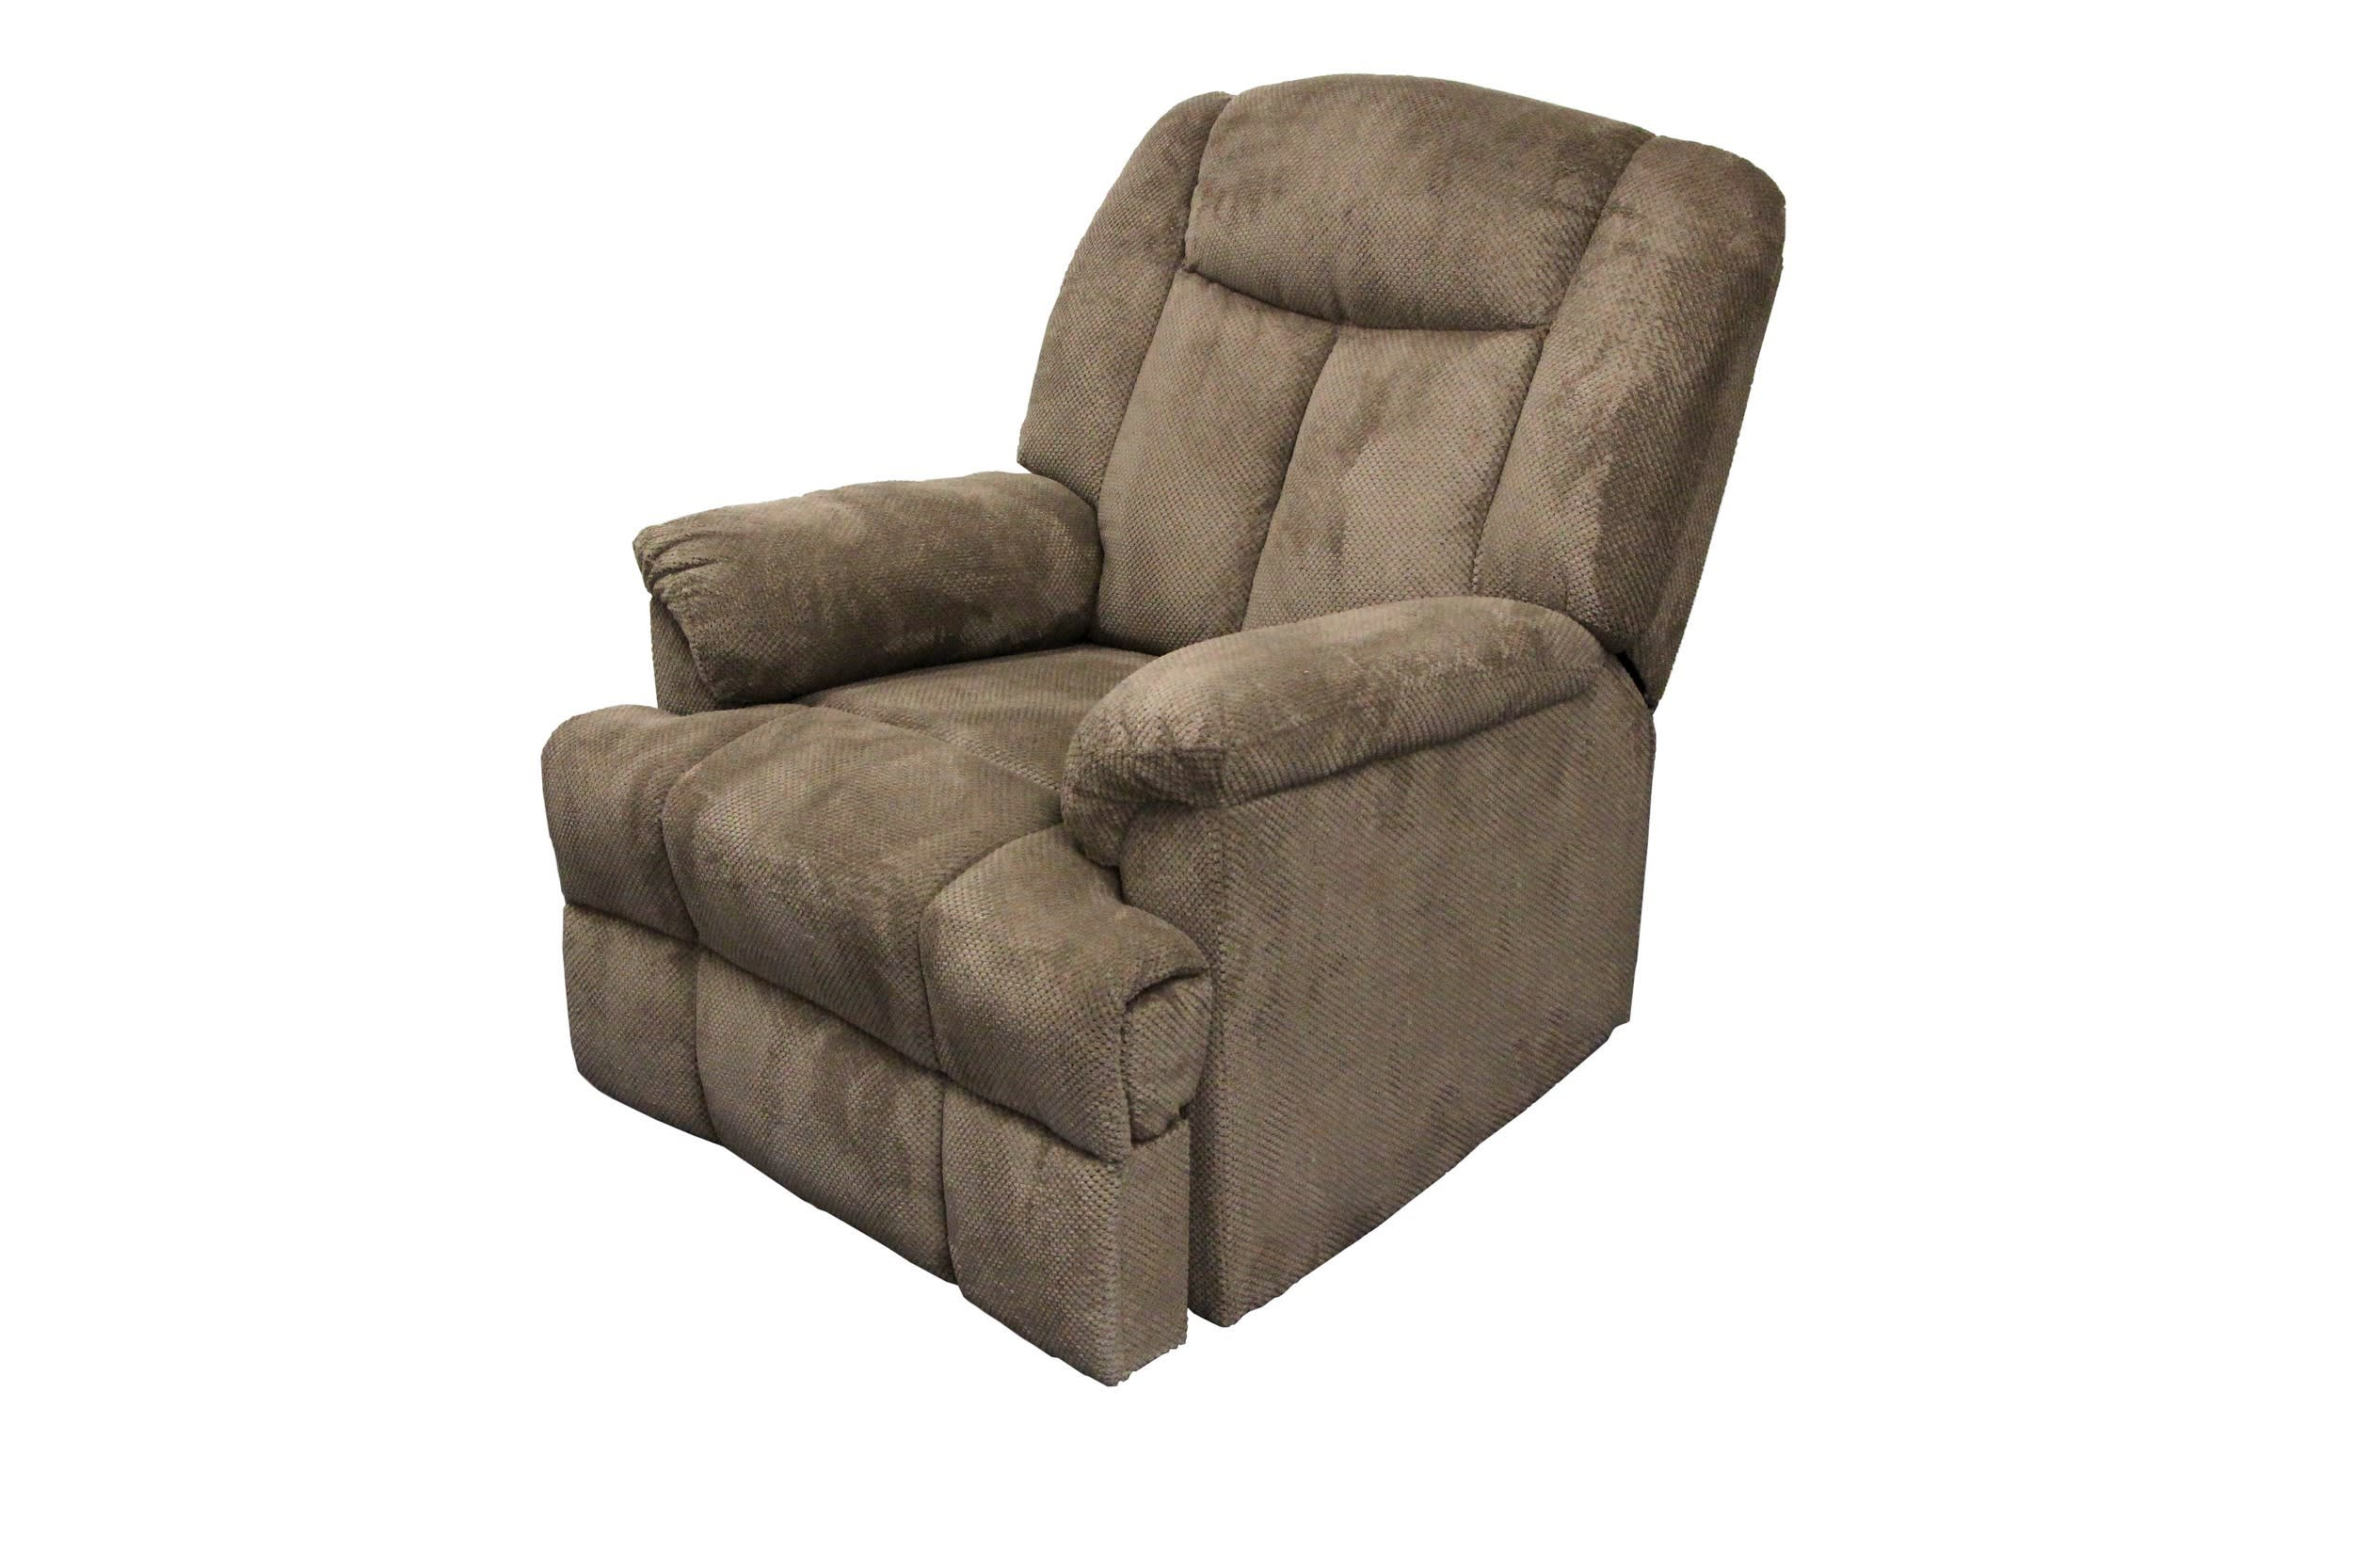 Terrific Acme Furniture Ixia Light Brown Fabric Recliner With Power Lift Massage Reviews Goedekers Com Pabps2019 Chair Design Images Pabps2019Com